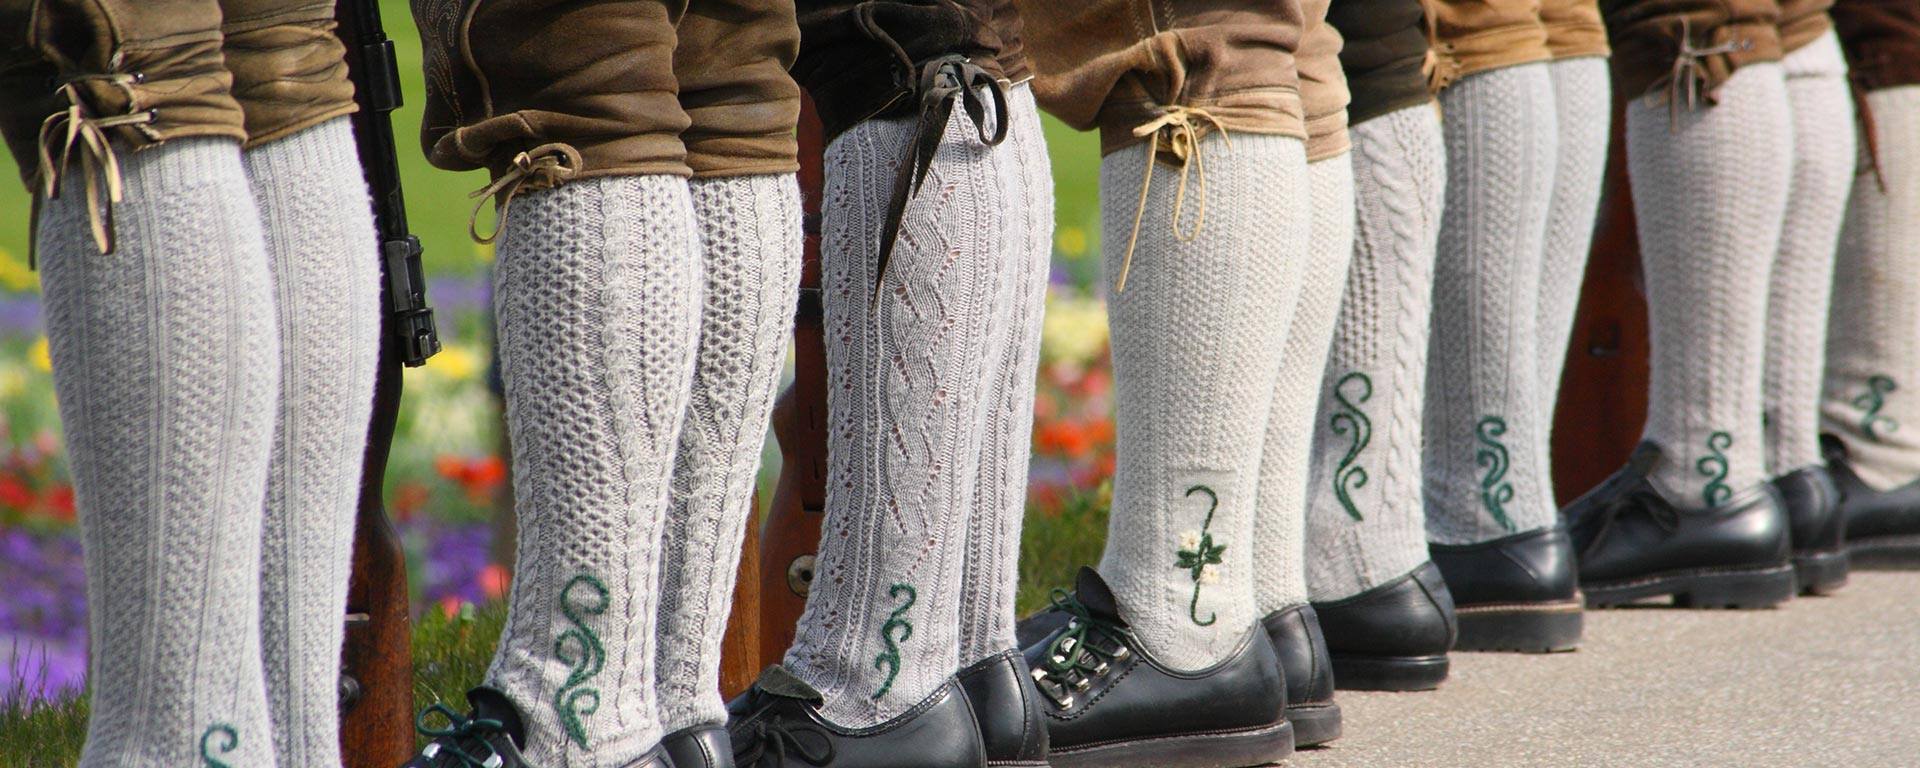 close up picture of some men's traditional shoes and socks during a folk festival in San Vigilio di Marebbe